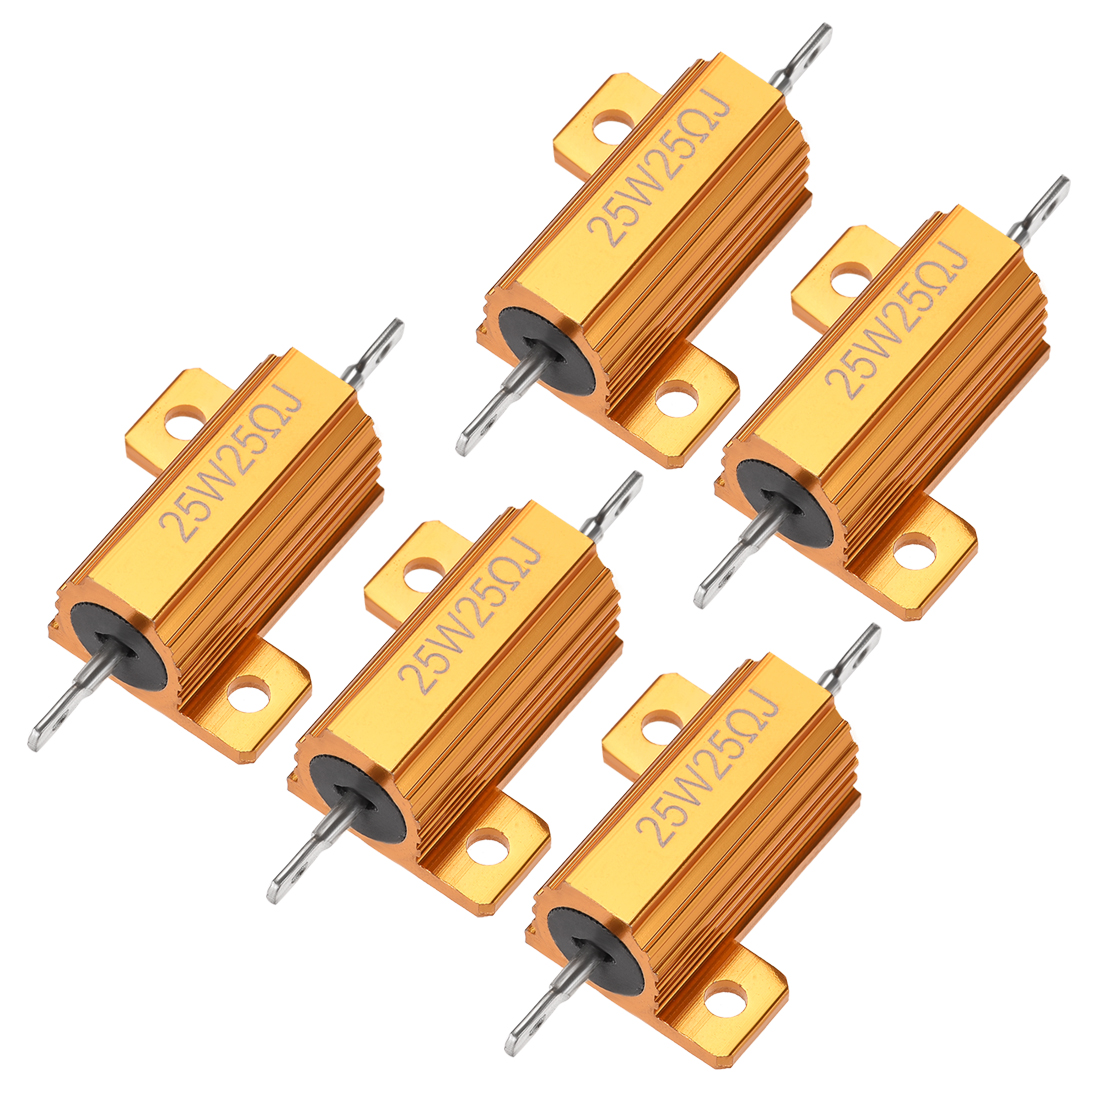 25W 25 Ohm 5% Aluminum Housing Resistor Wirewound Resistor Gold Tone 5 Pcs